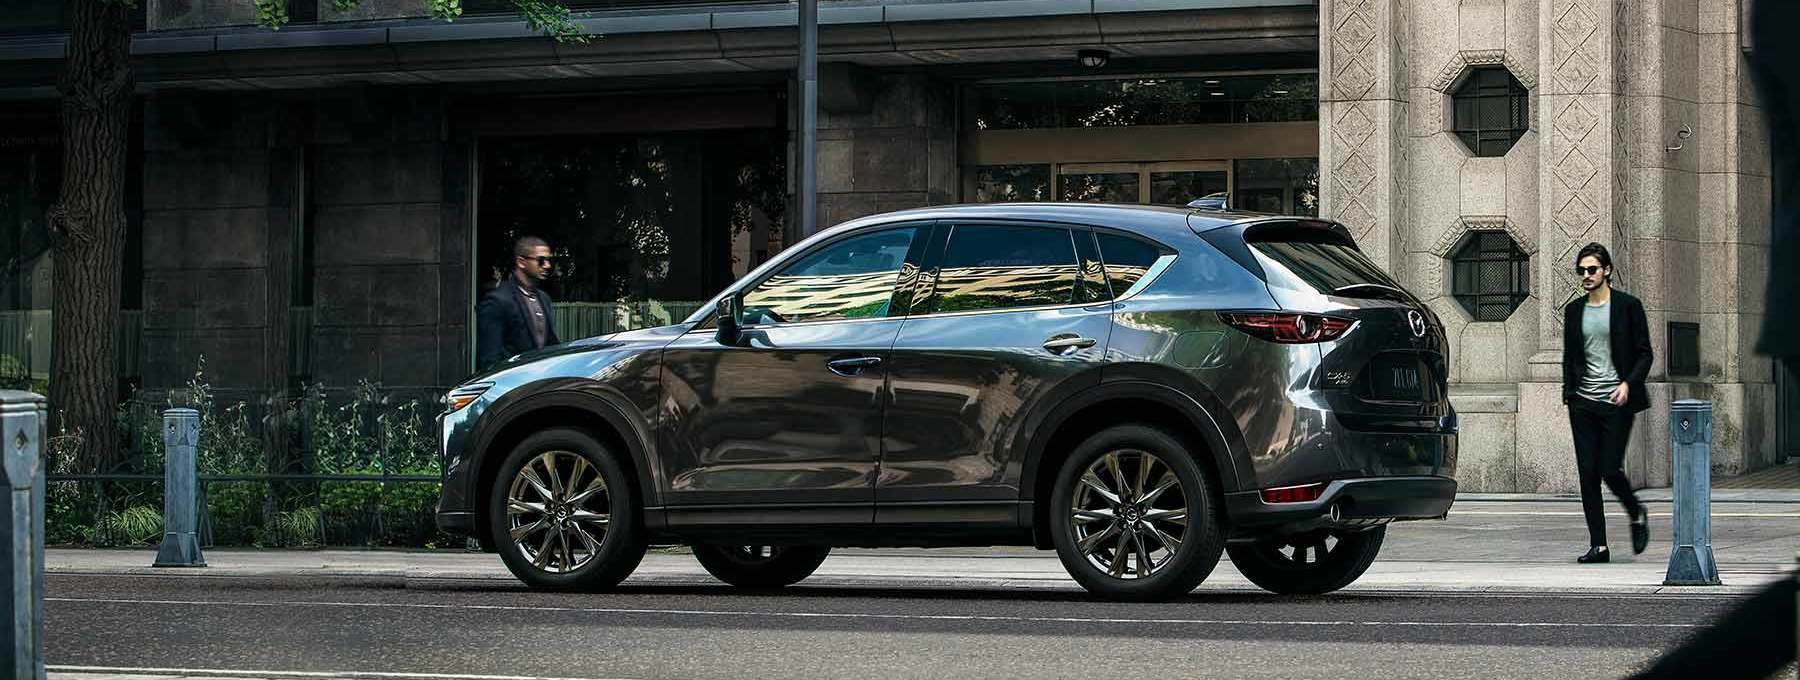 2019 Mazda CX-5 Financing near Boerne, TX